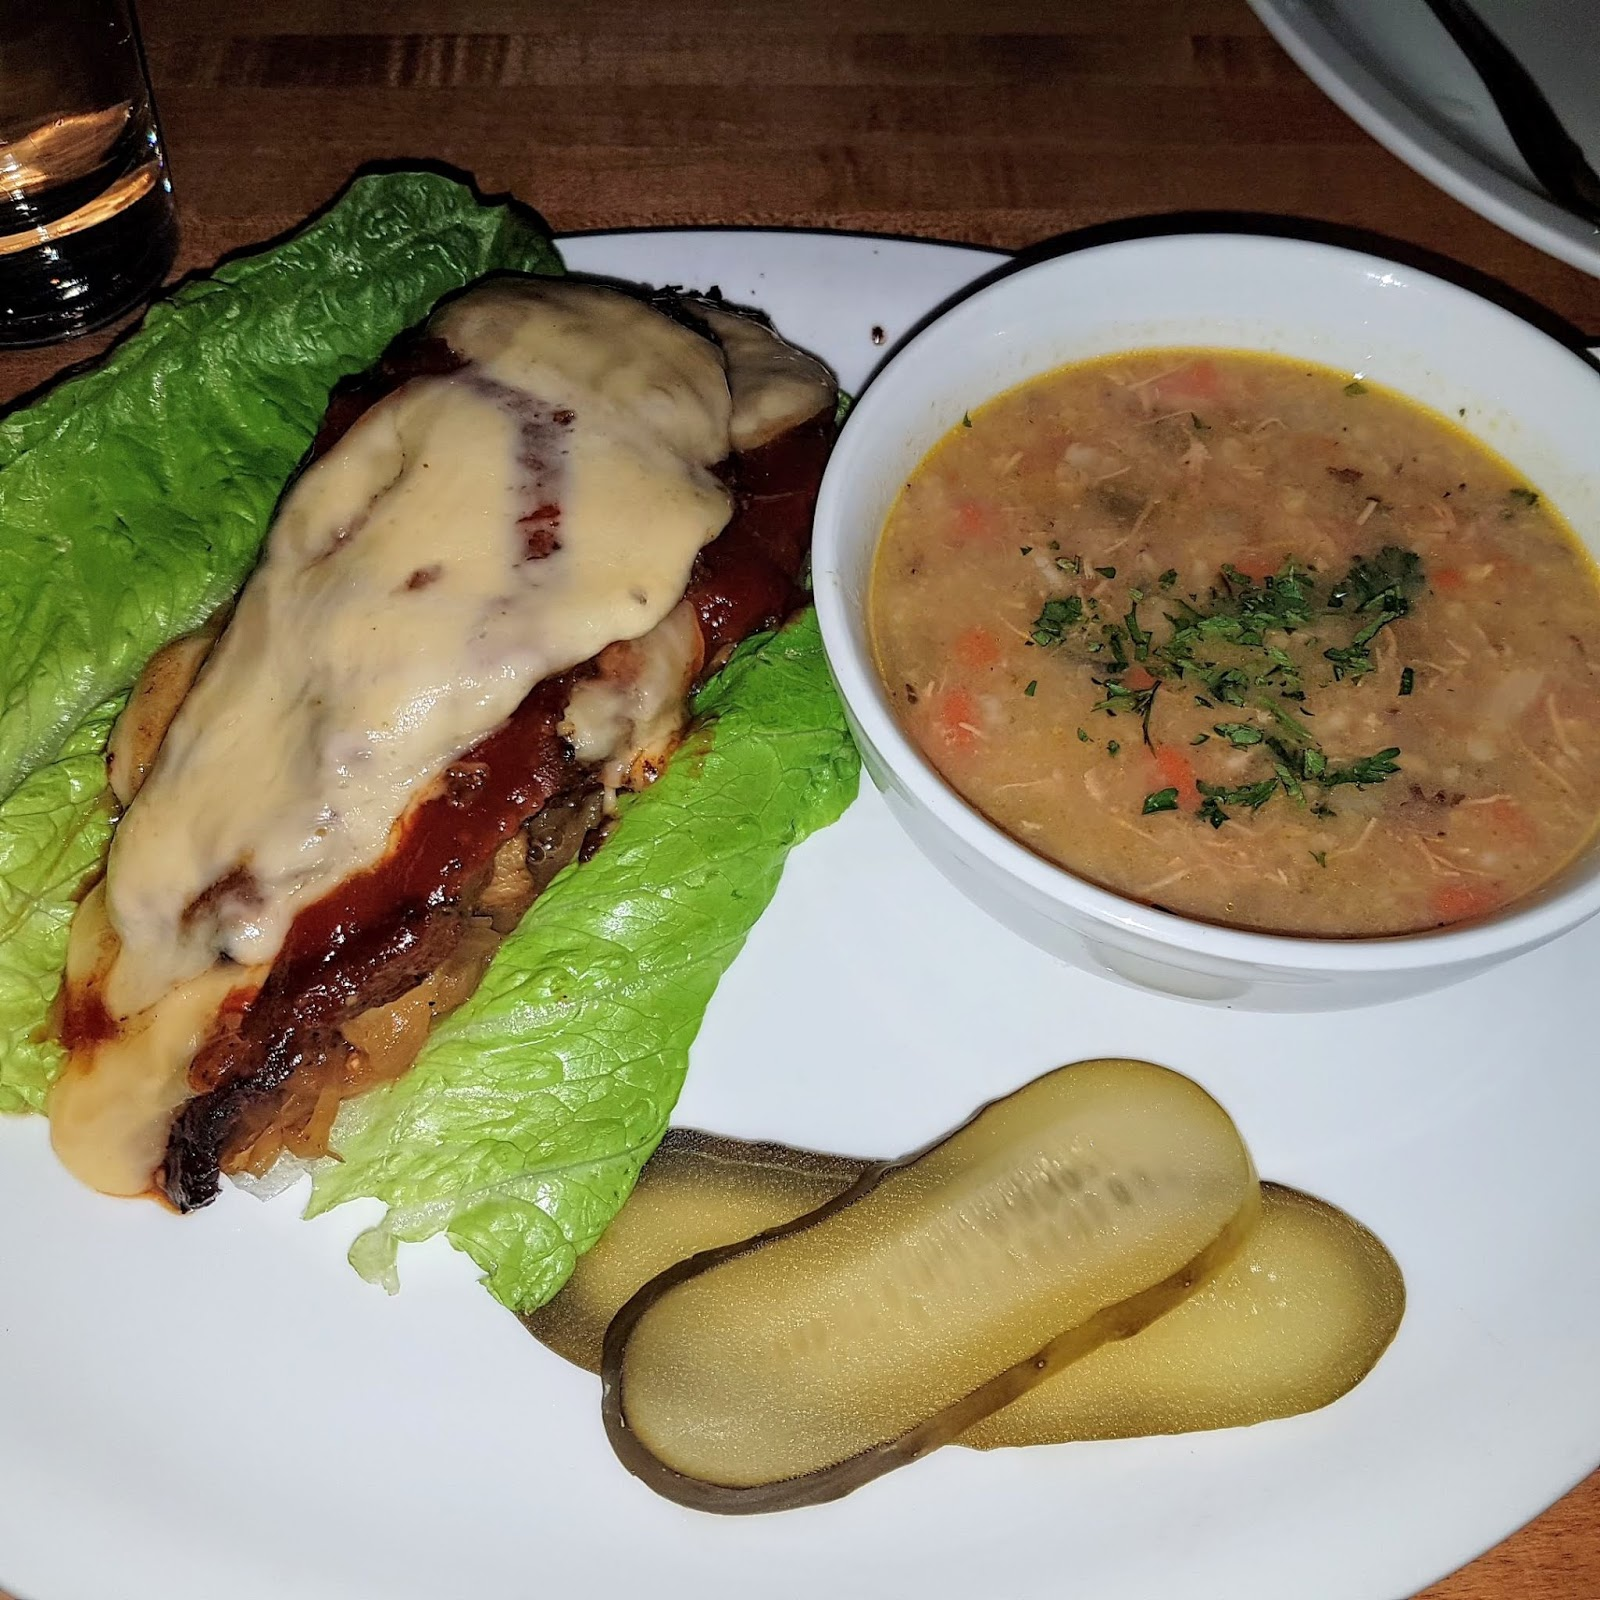 Steak and soup at Rustic Kitchen and Bar